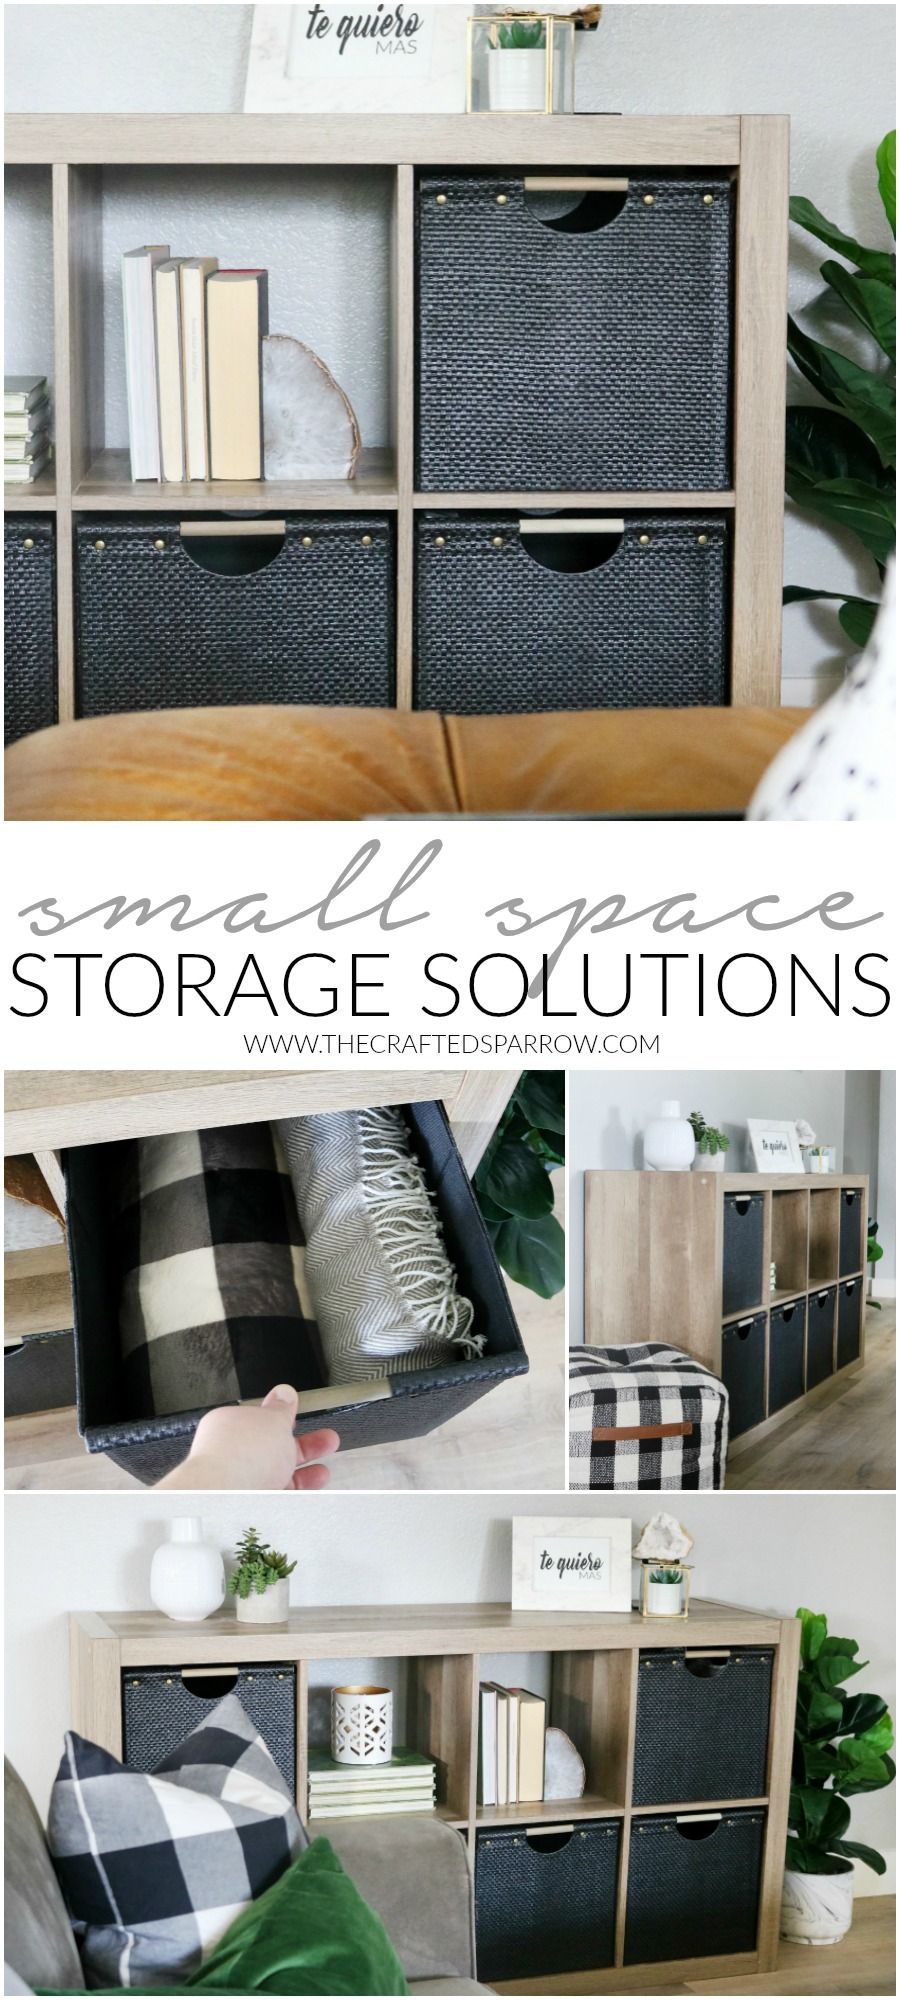 Small Space Storage Solutions Small Space Storage Small Space Storage Solutions Storage Solutions